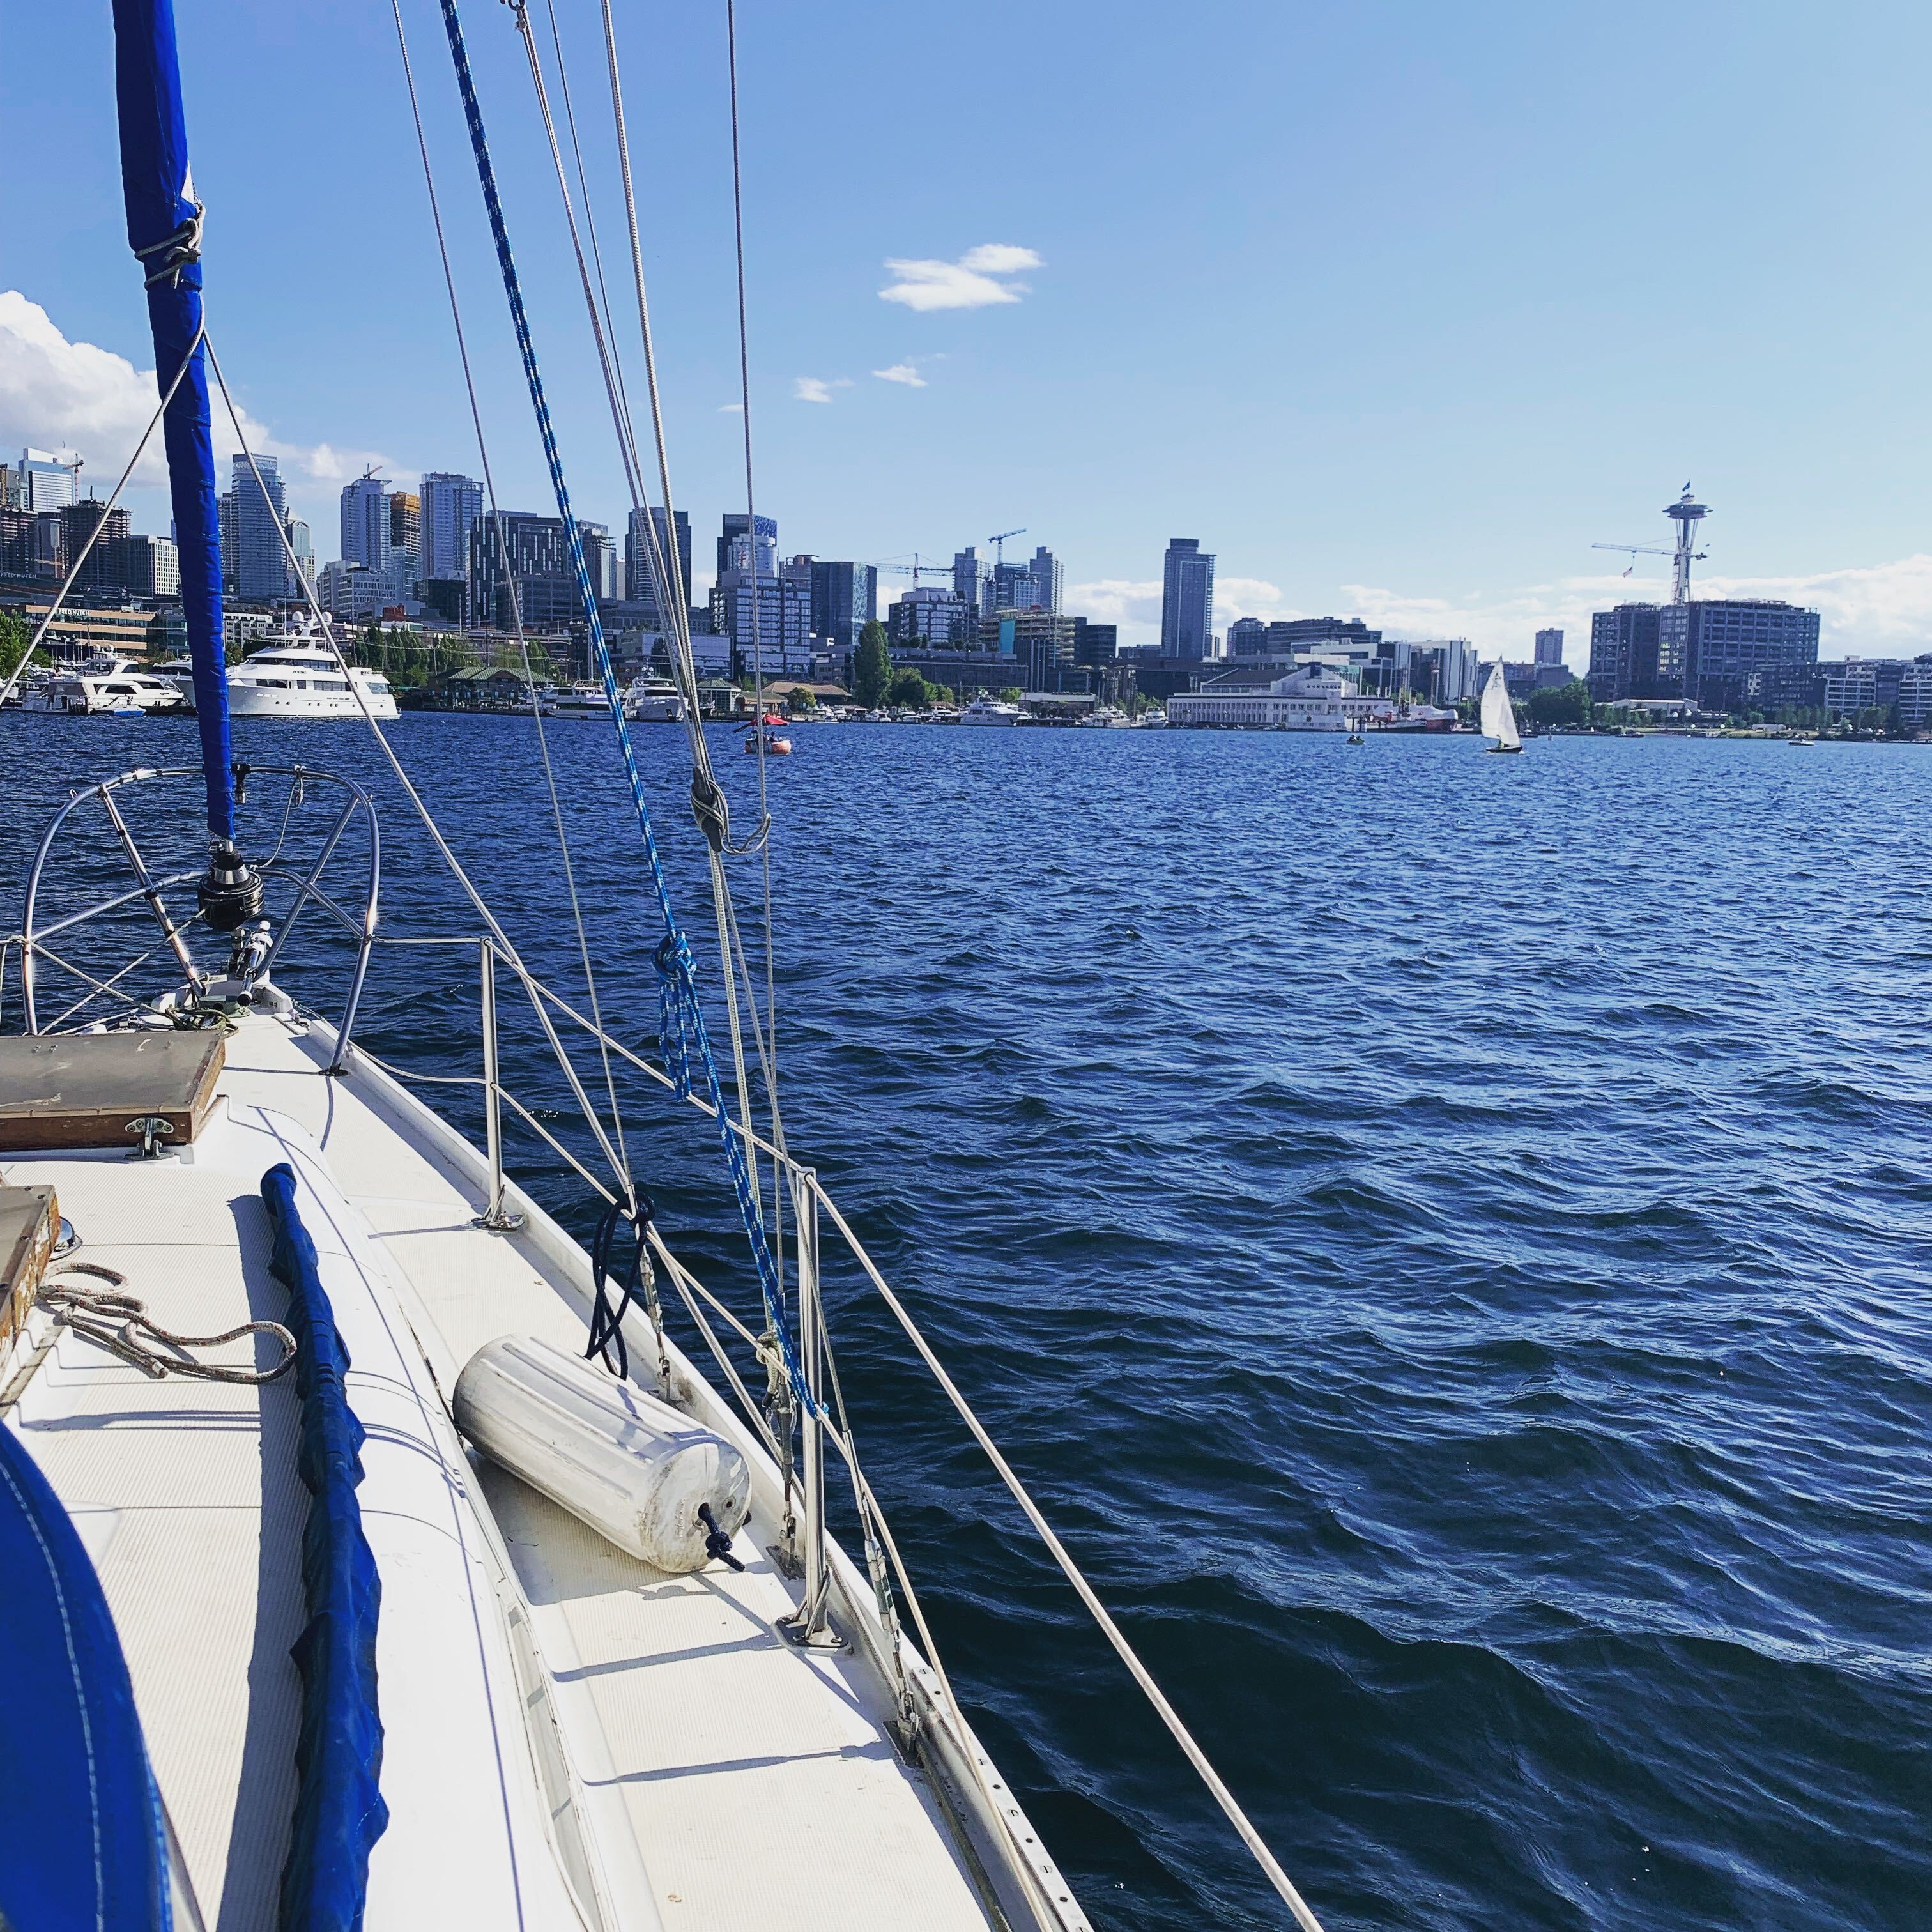 A picture of downtown seattle, the space-needle, with a bow of a sailboat in the foreground,